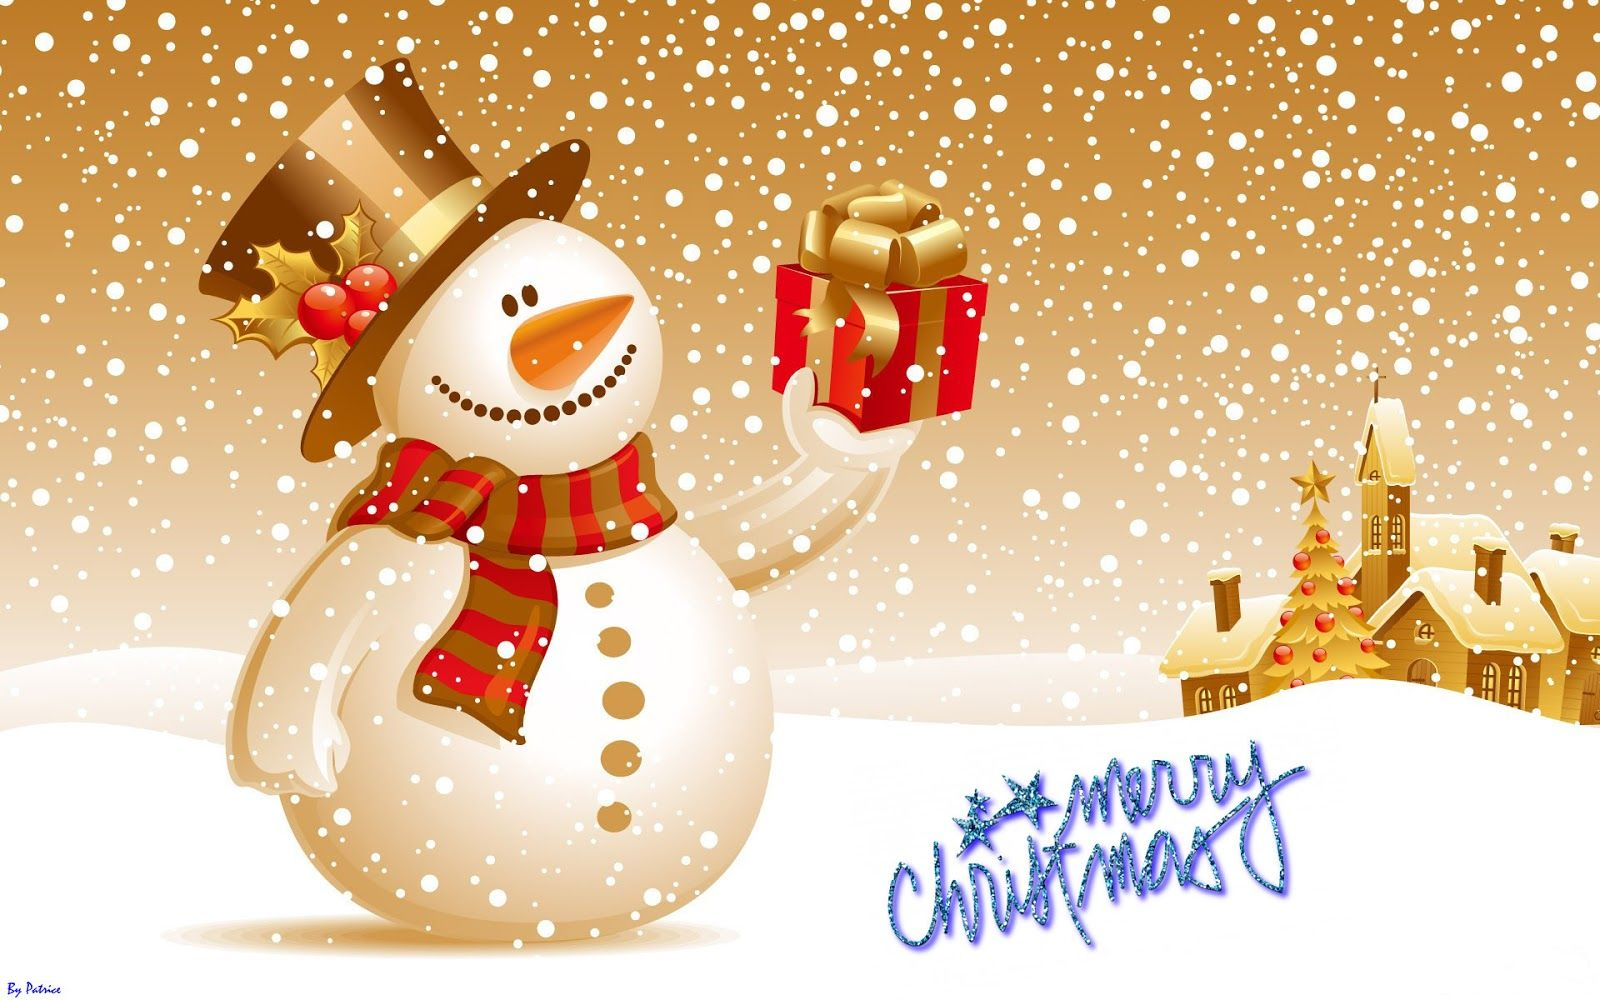 Merry christmas hd images 10 merry christmas hd images merry christmas hd images 10 kristyandbryce Gallery